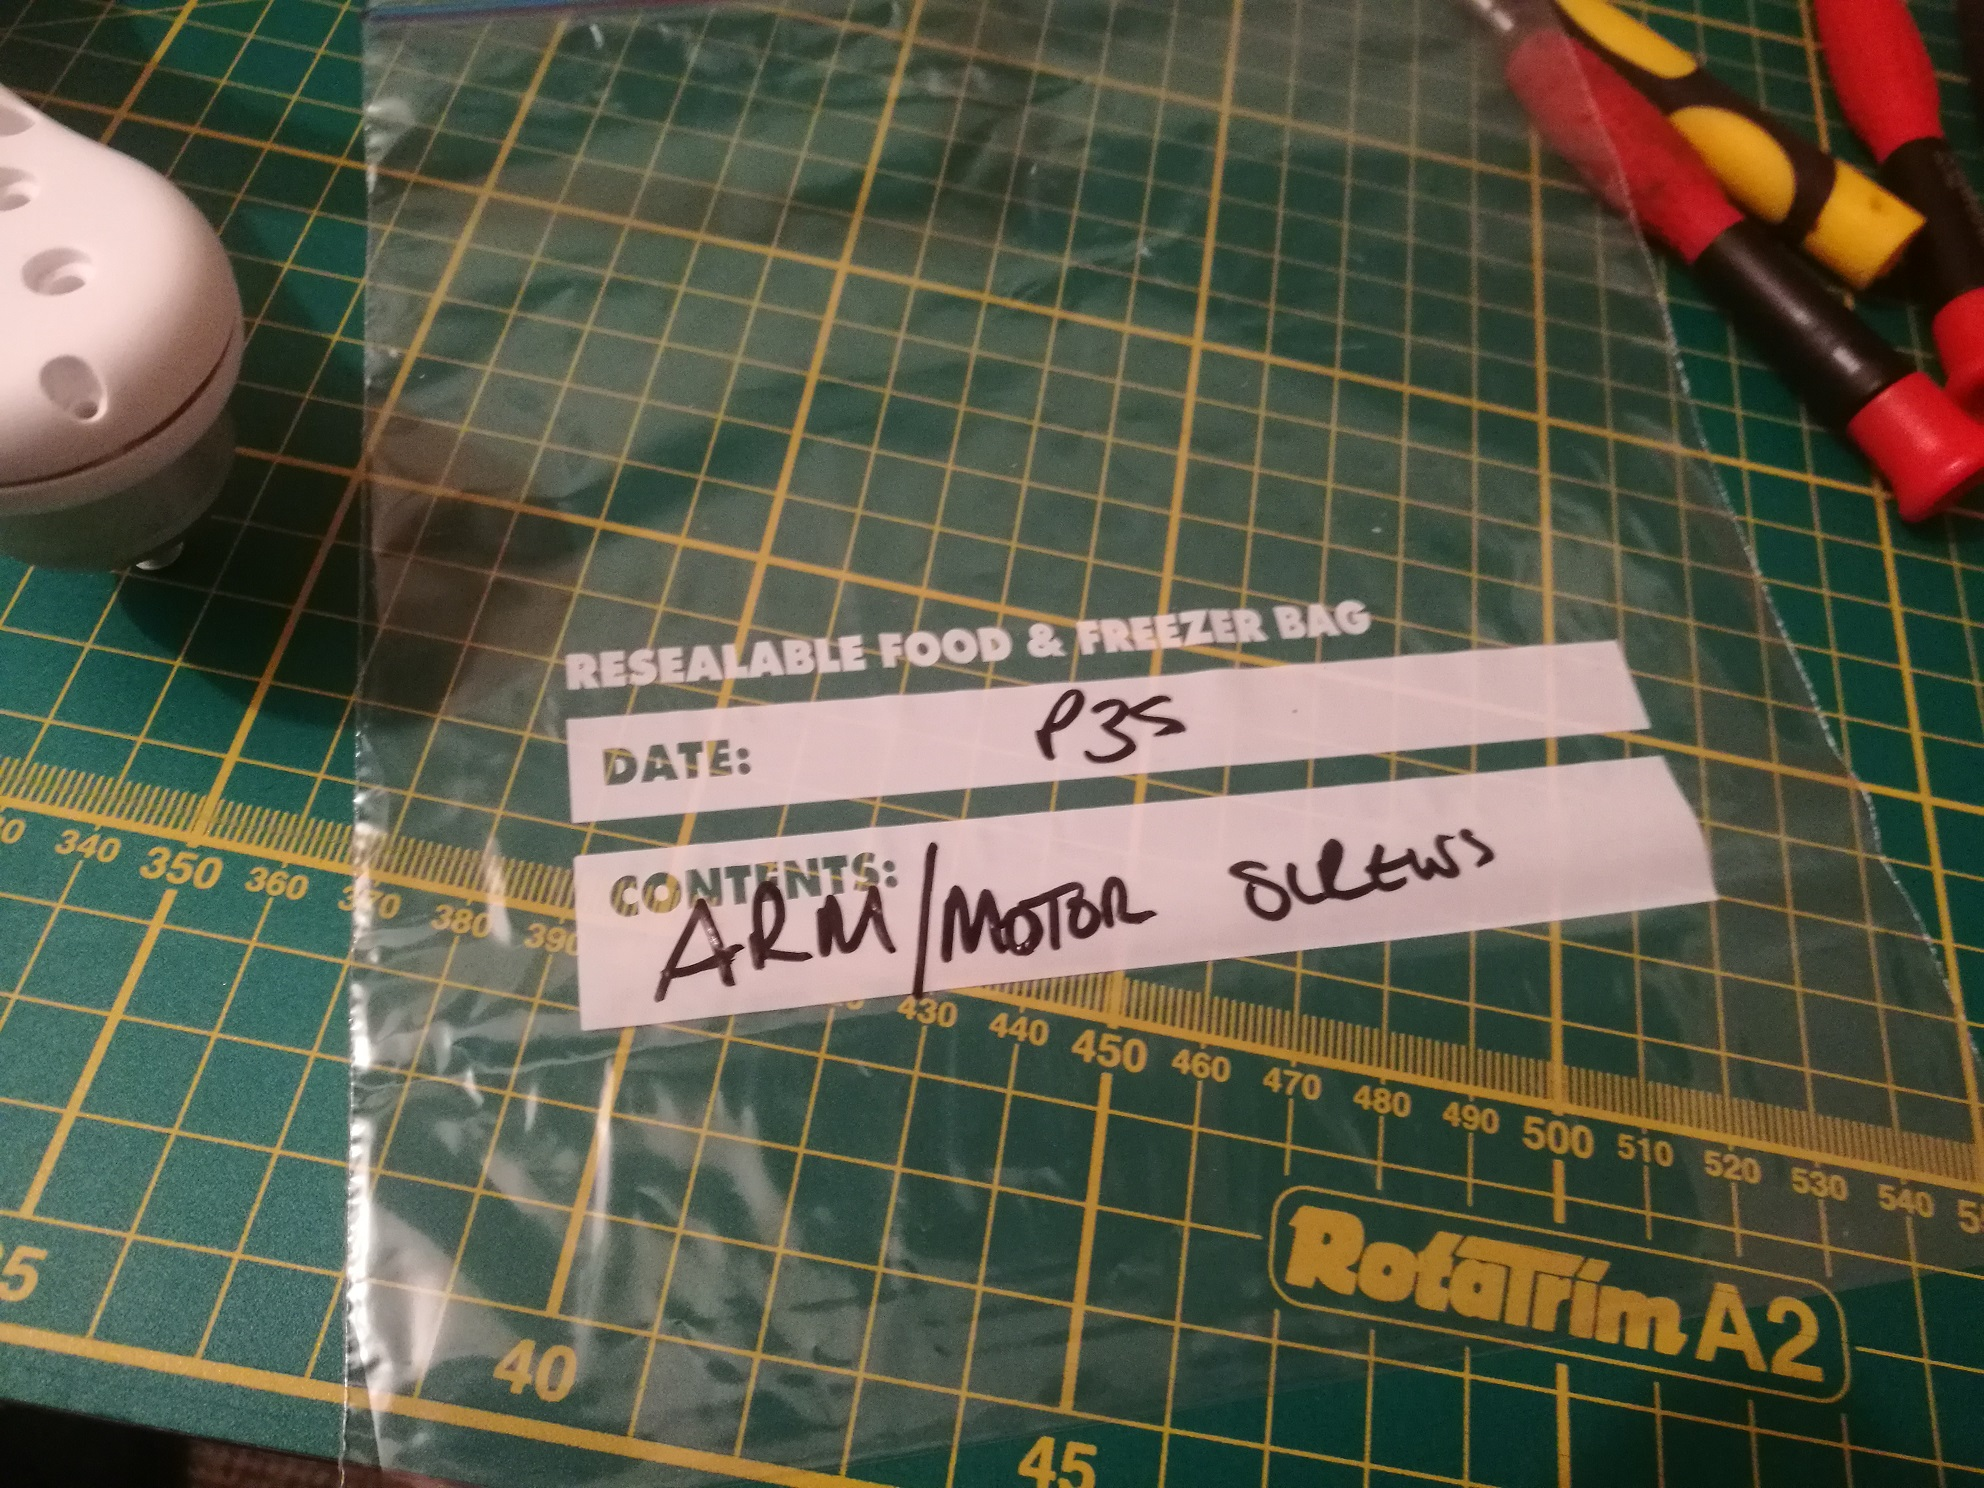 Freezer bags allow labeling of removed parts